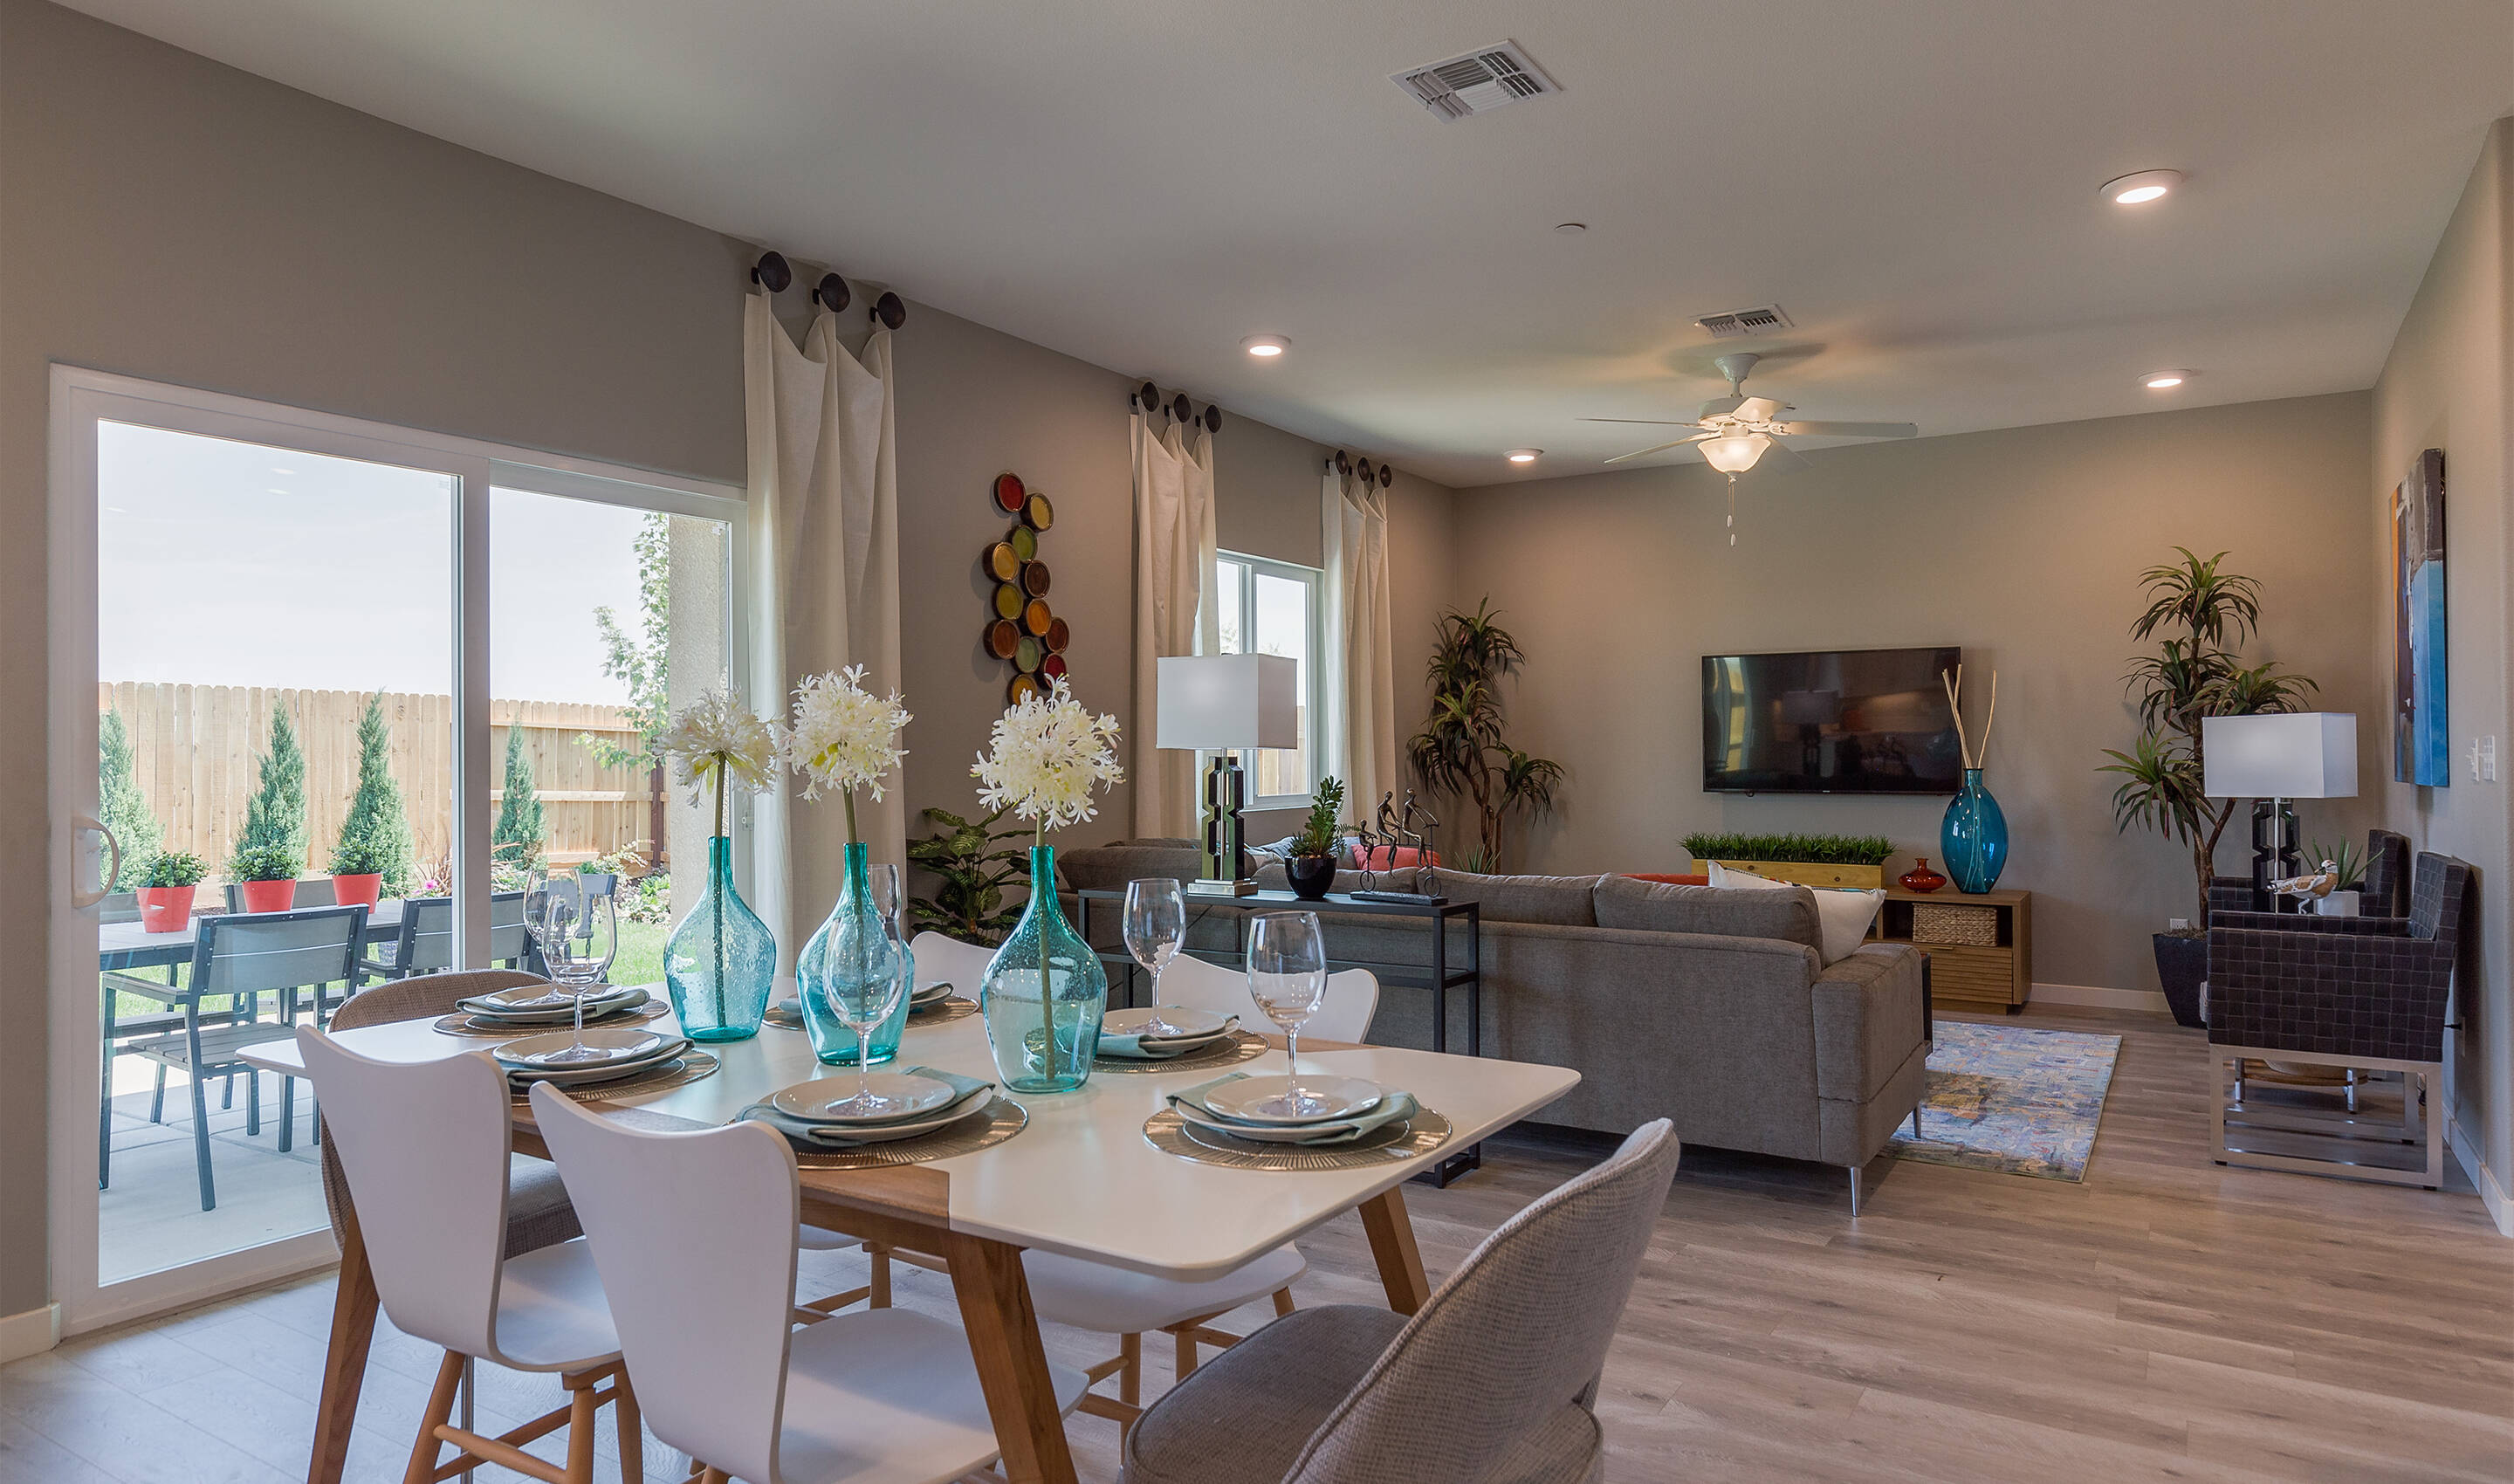 khov_sacramento_aspire at sierra vista_primrose_dining area 2